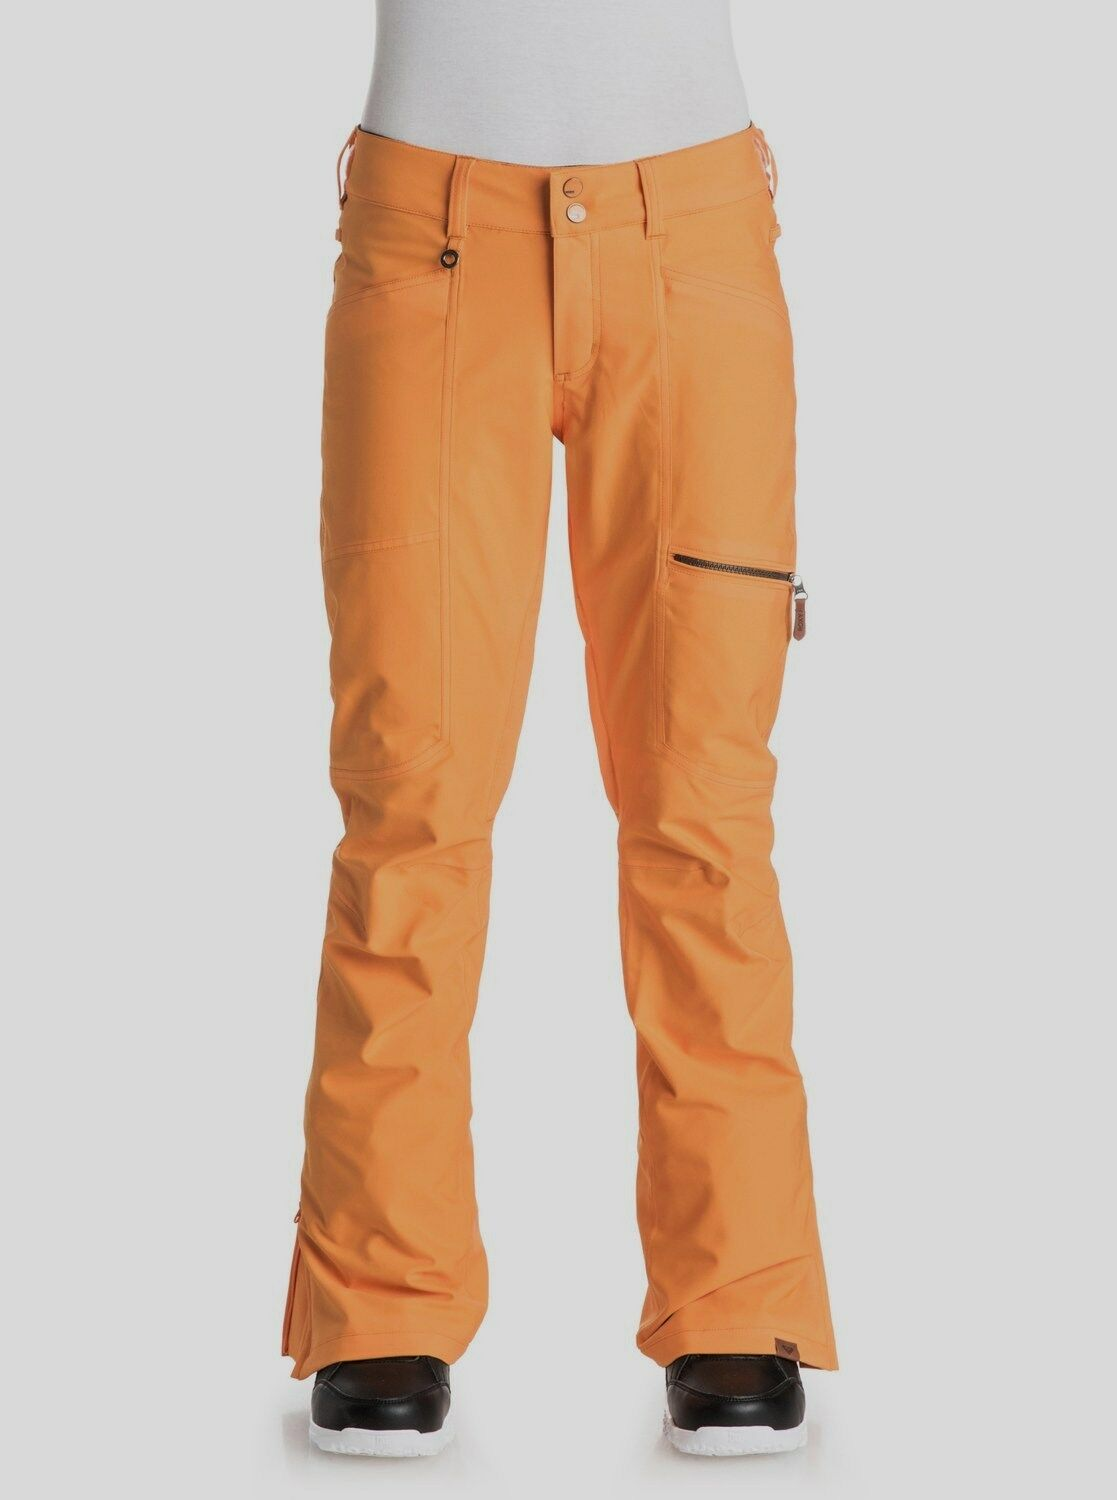 ROXY Women's CABIN  Snow Pants - NHP0 - Large - NWT  great selection & quick delivery